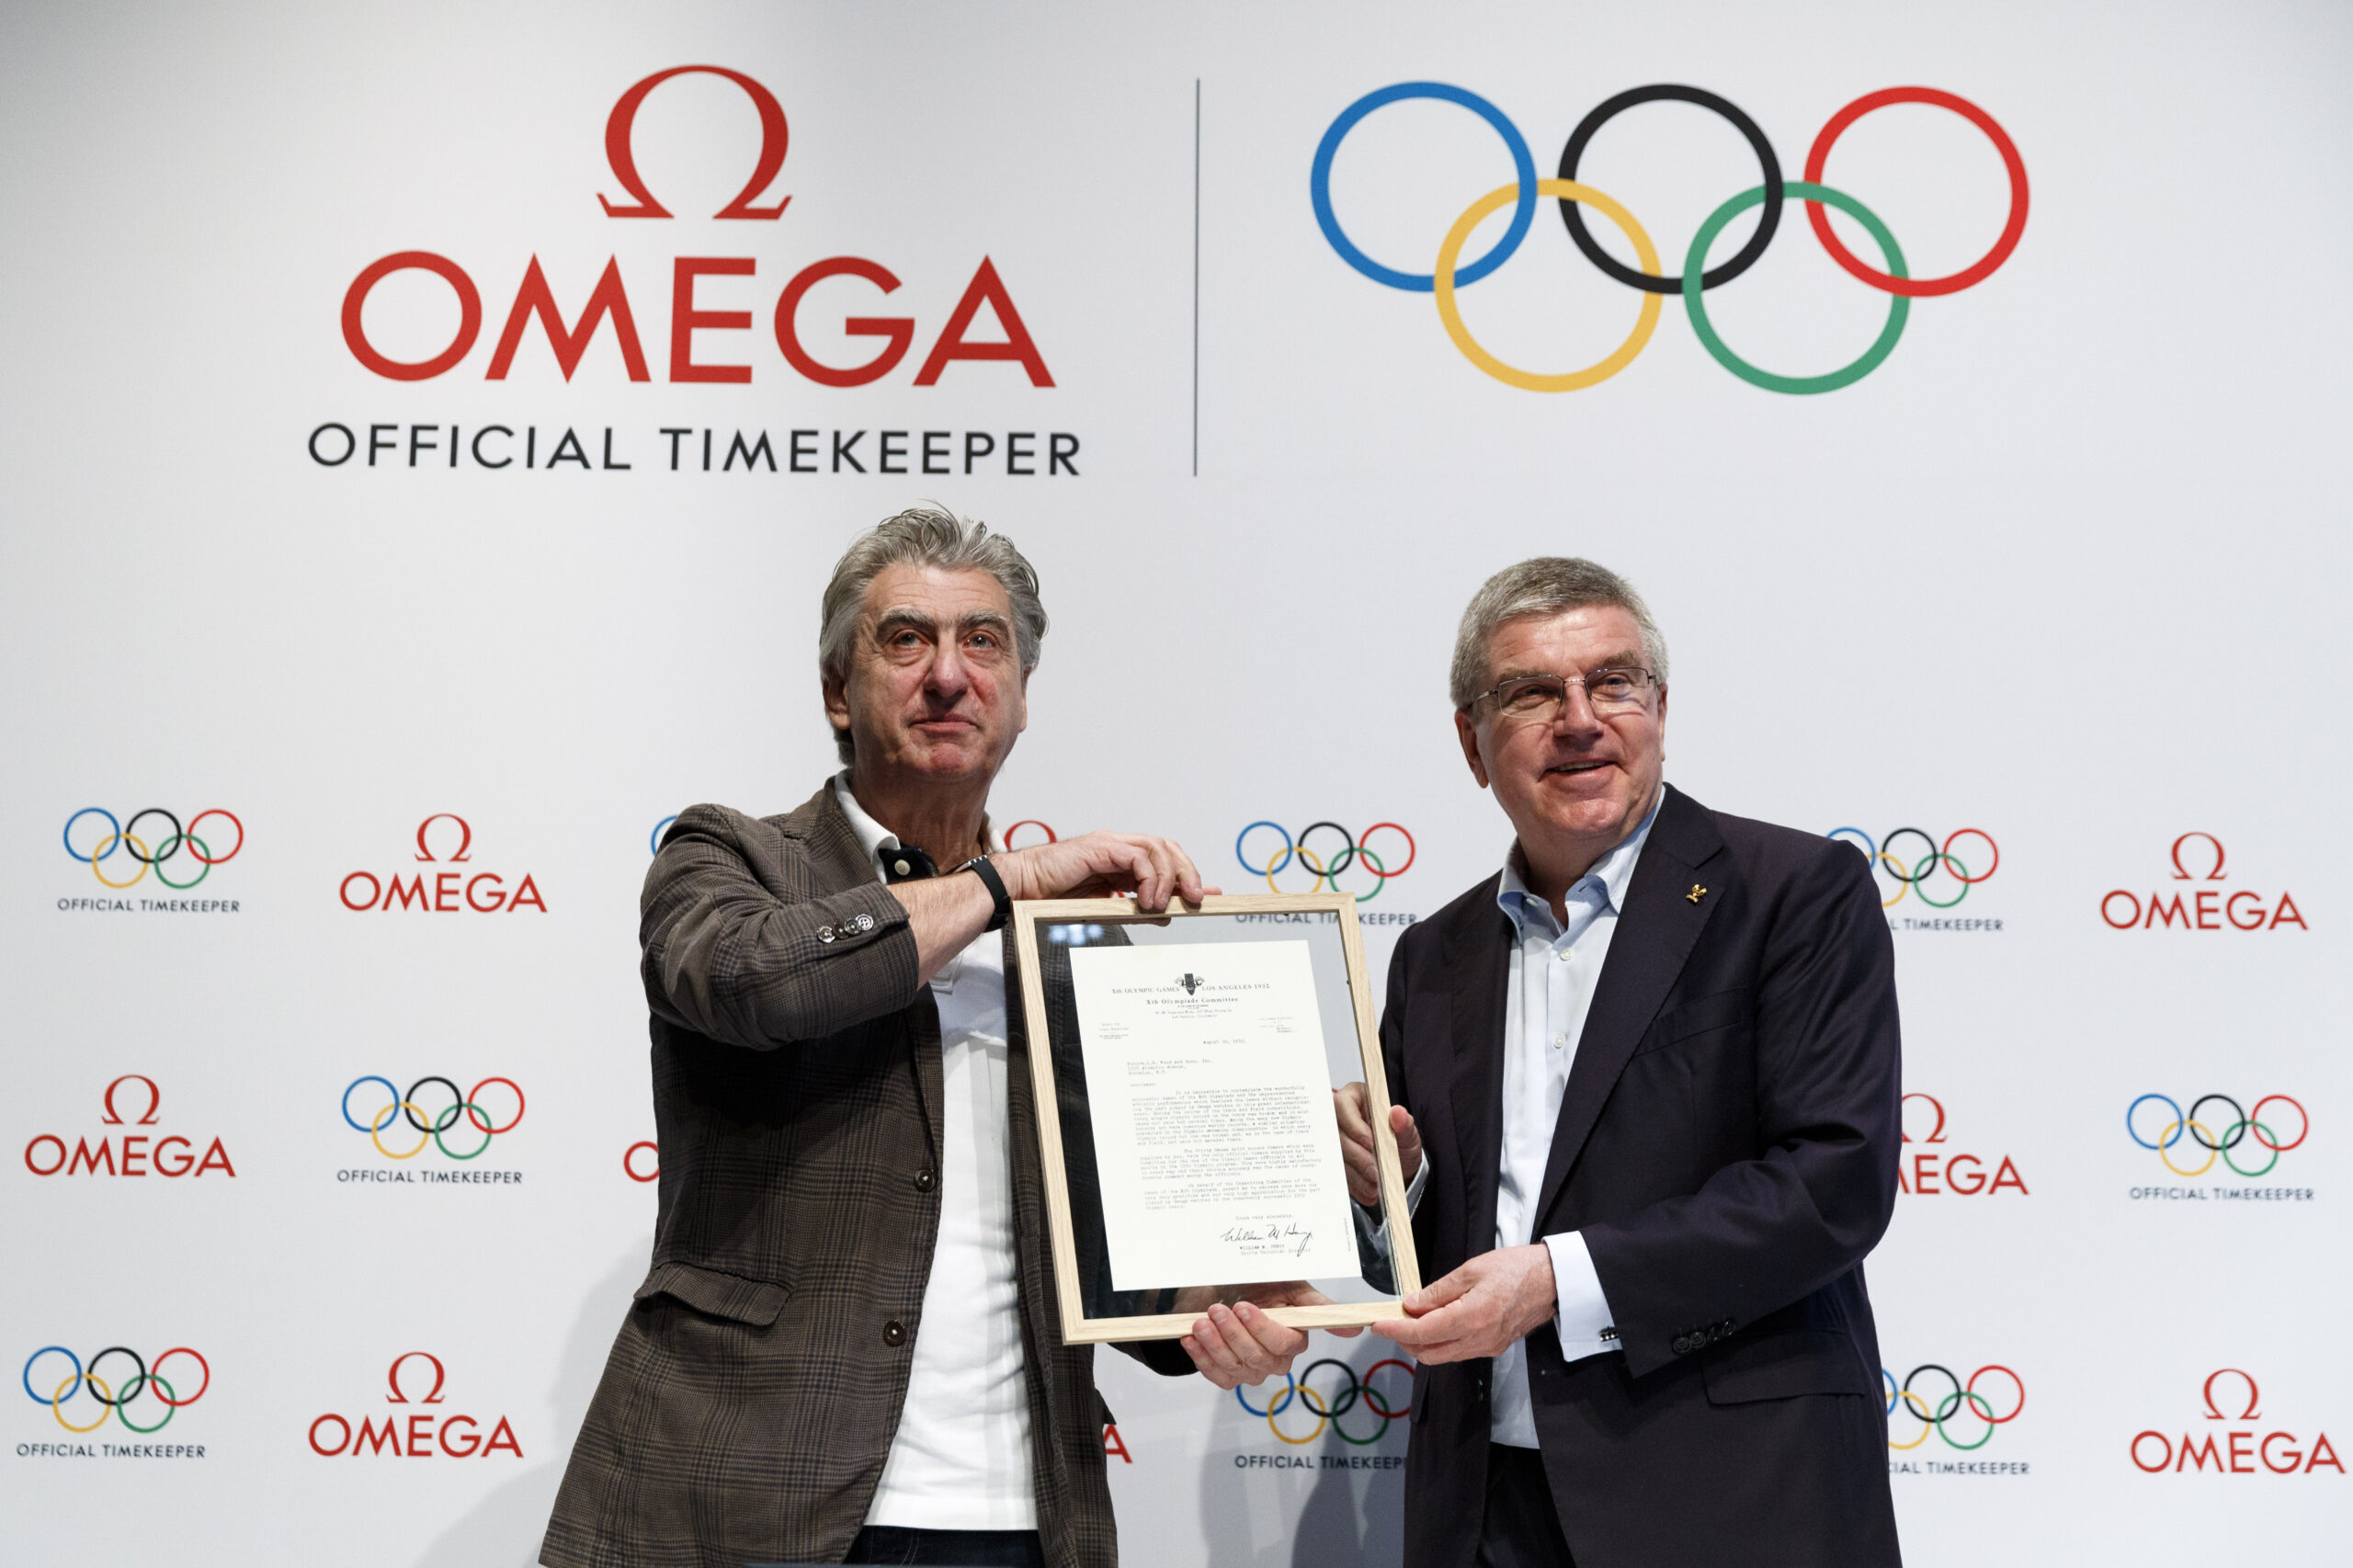 Nick Hayek, CEO of Swatch Group and IOC President Thomas Bach announced the extension of Omega´s global partnership with the International Olympic Committee (IOC) through to 2032